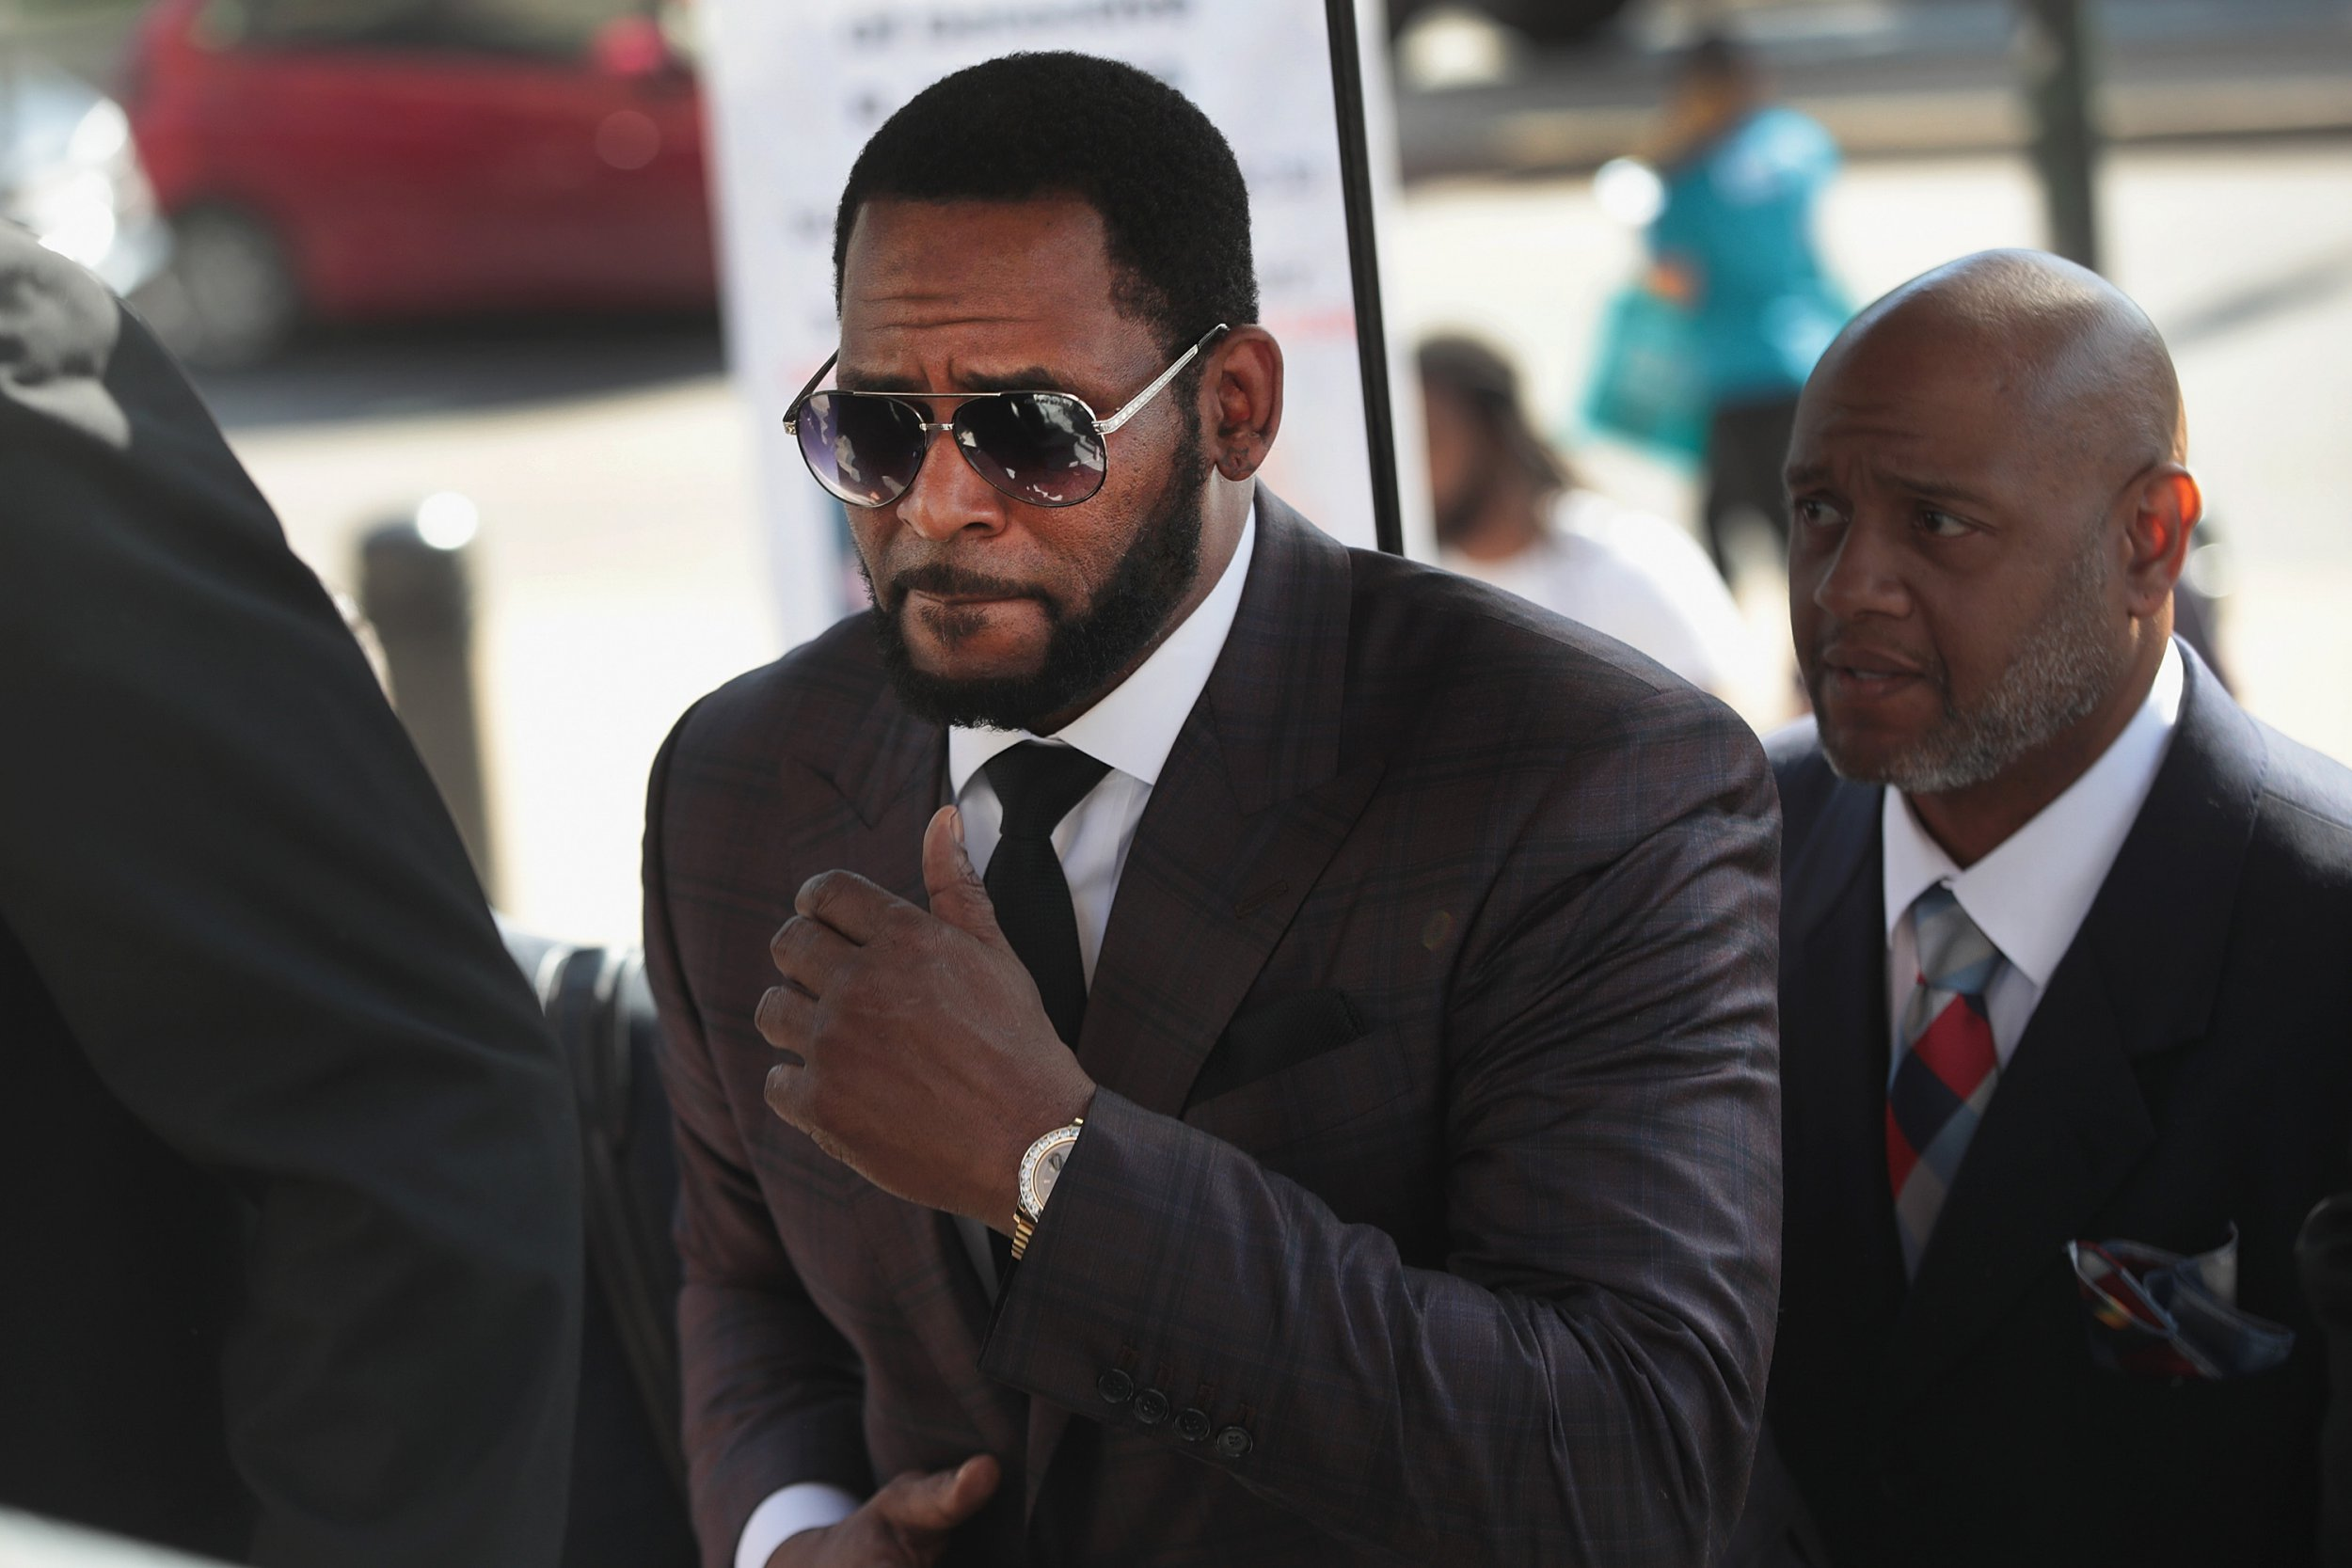 R Kelly arrives during a Leighton Criminal Courts Building